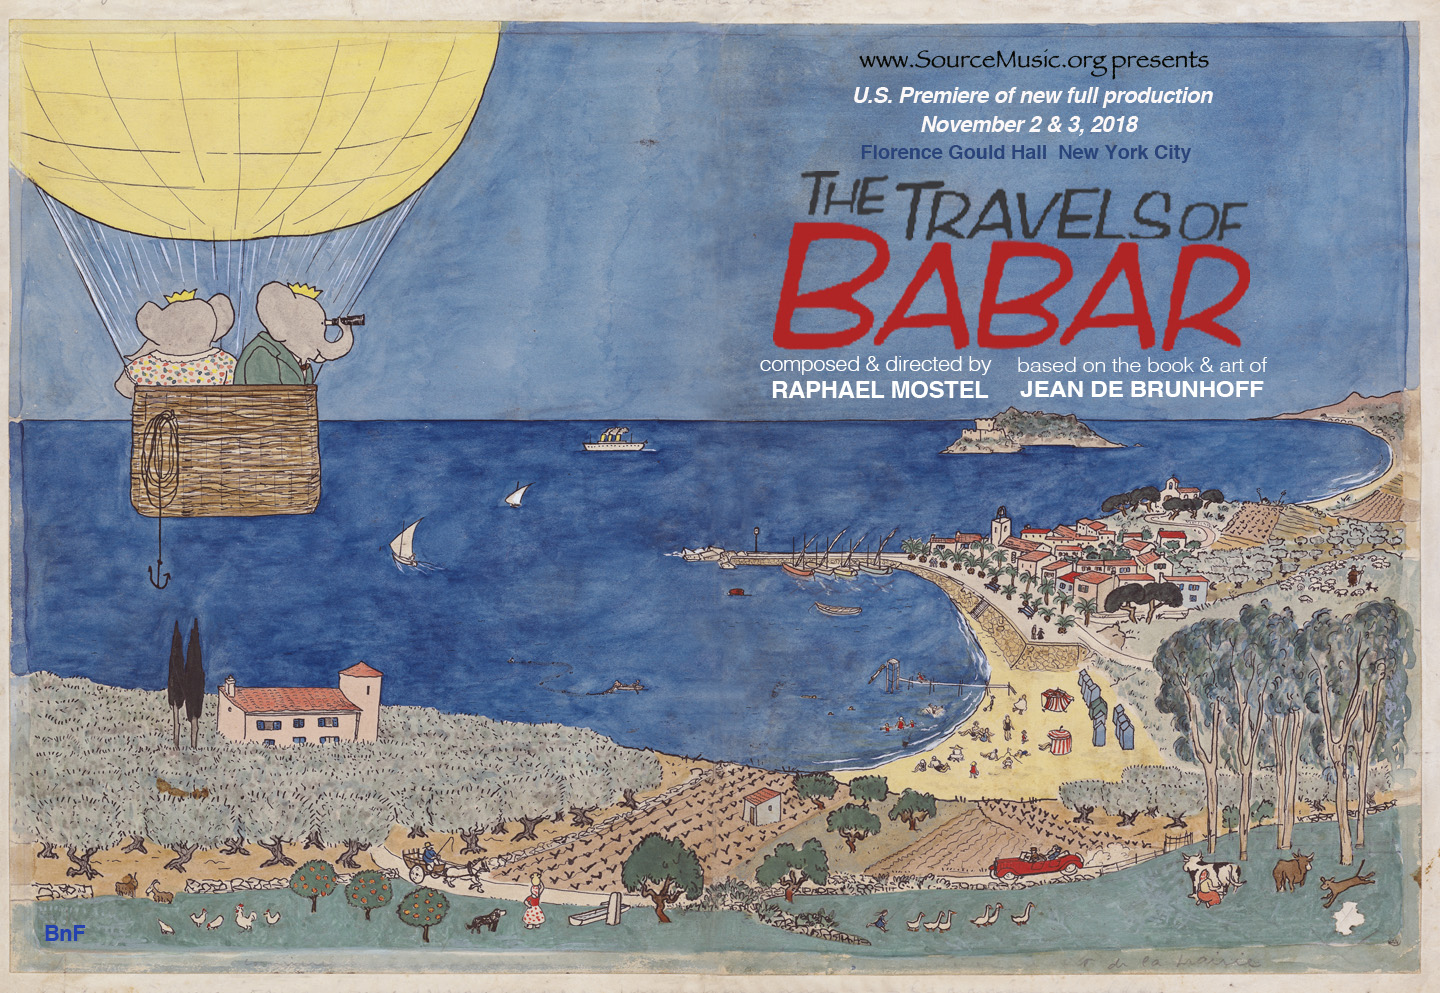 Original Jean de Brunhoff watercolor for  Le Voyage de Babar , 1932, from the collection of the Bibliothèque nationale de France. Used with permission